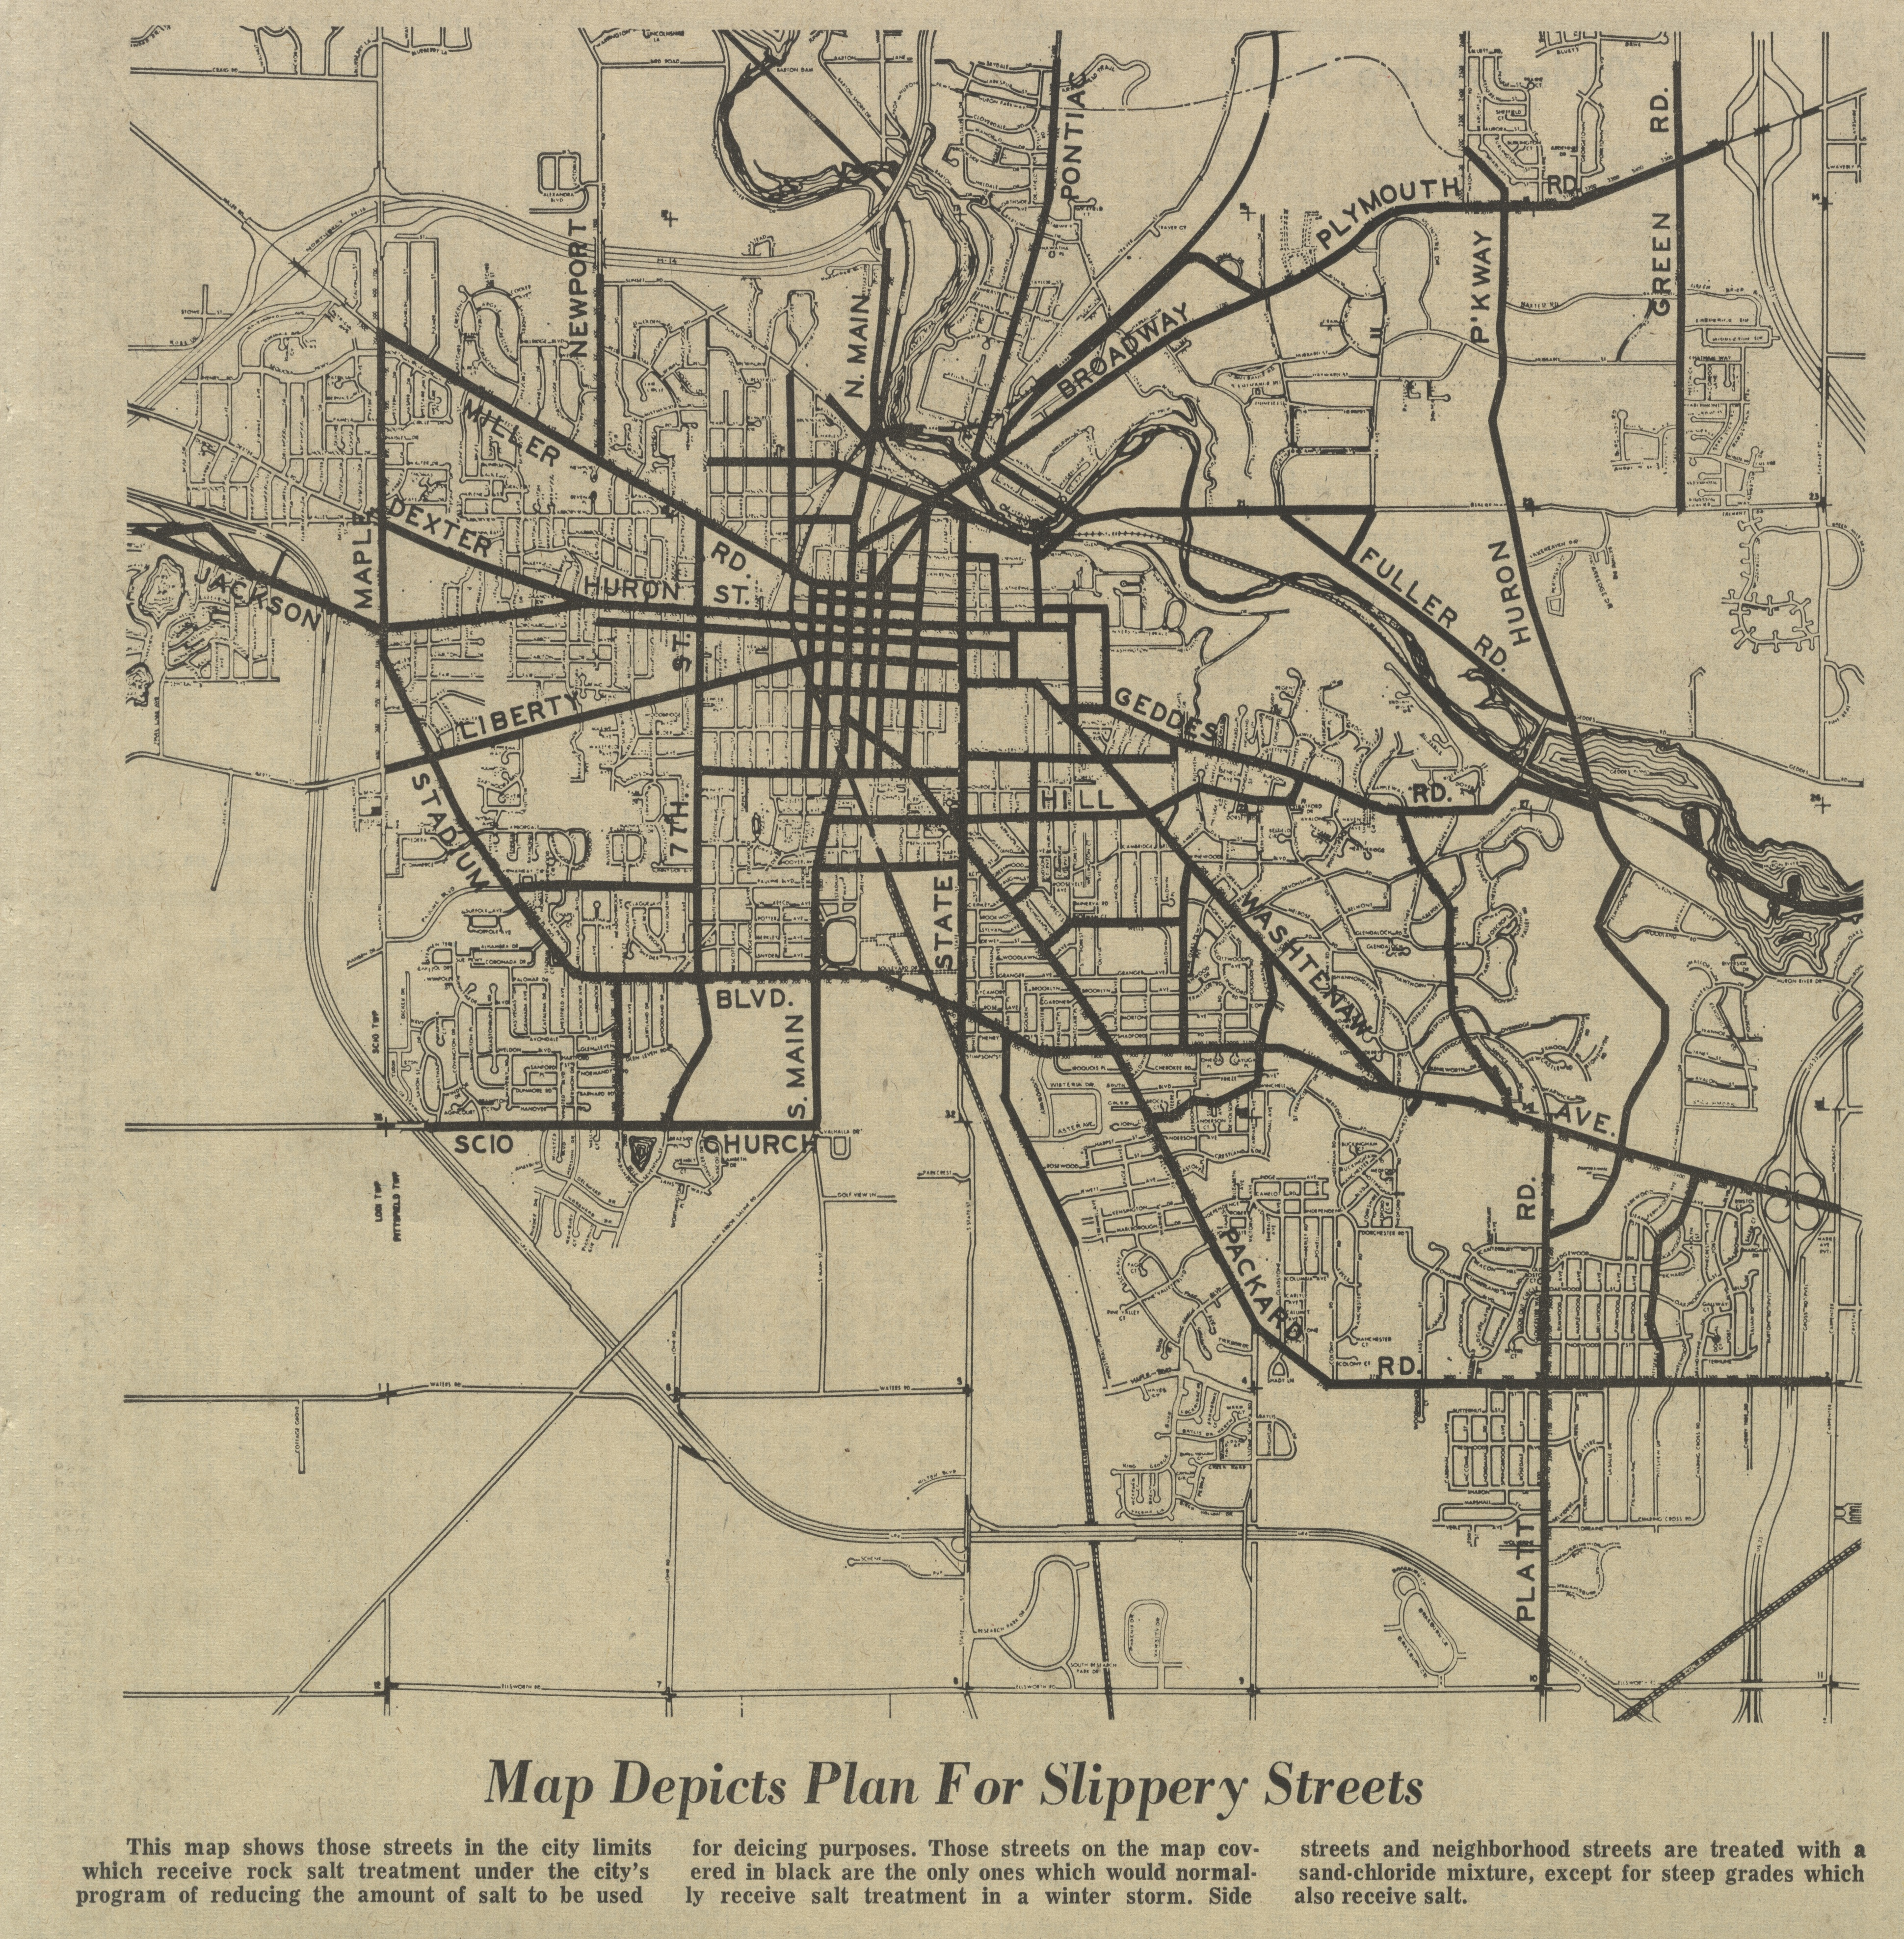 Map Depicts Plan For Slippery Streets image